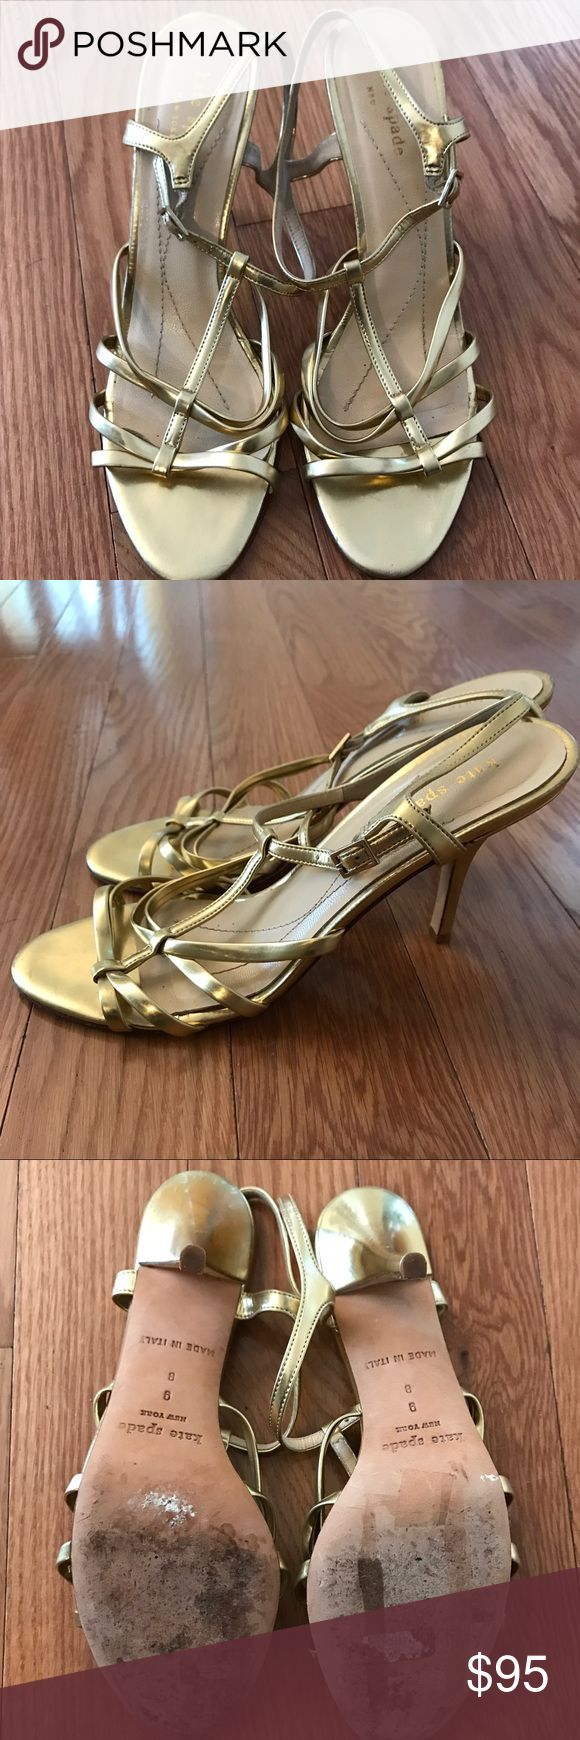 Authentic Kate Spade Gold Strappy Sandals Guaranteed authentic! Gold metallic leather Kate Spade New York multistrap sandals with tonal stitching throughout, covered heels and buckle closures at ankle straps. Minor discoloration at left heel; not visible while wearing. Good used condition. Strong offers considered. kate spade Shoes